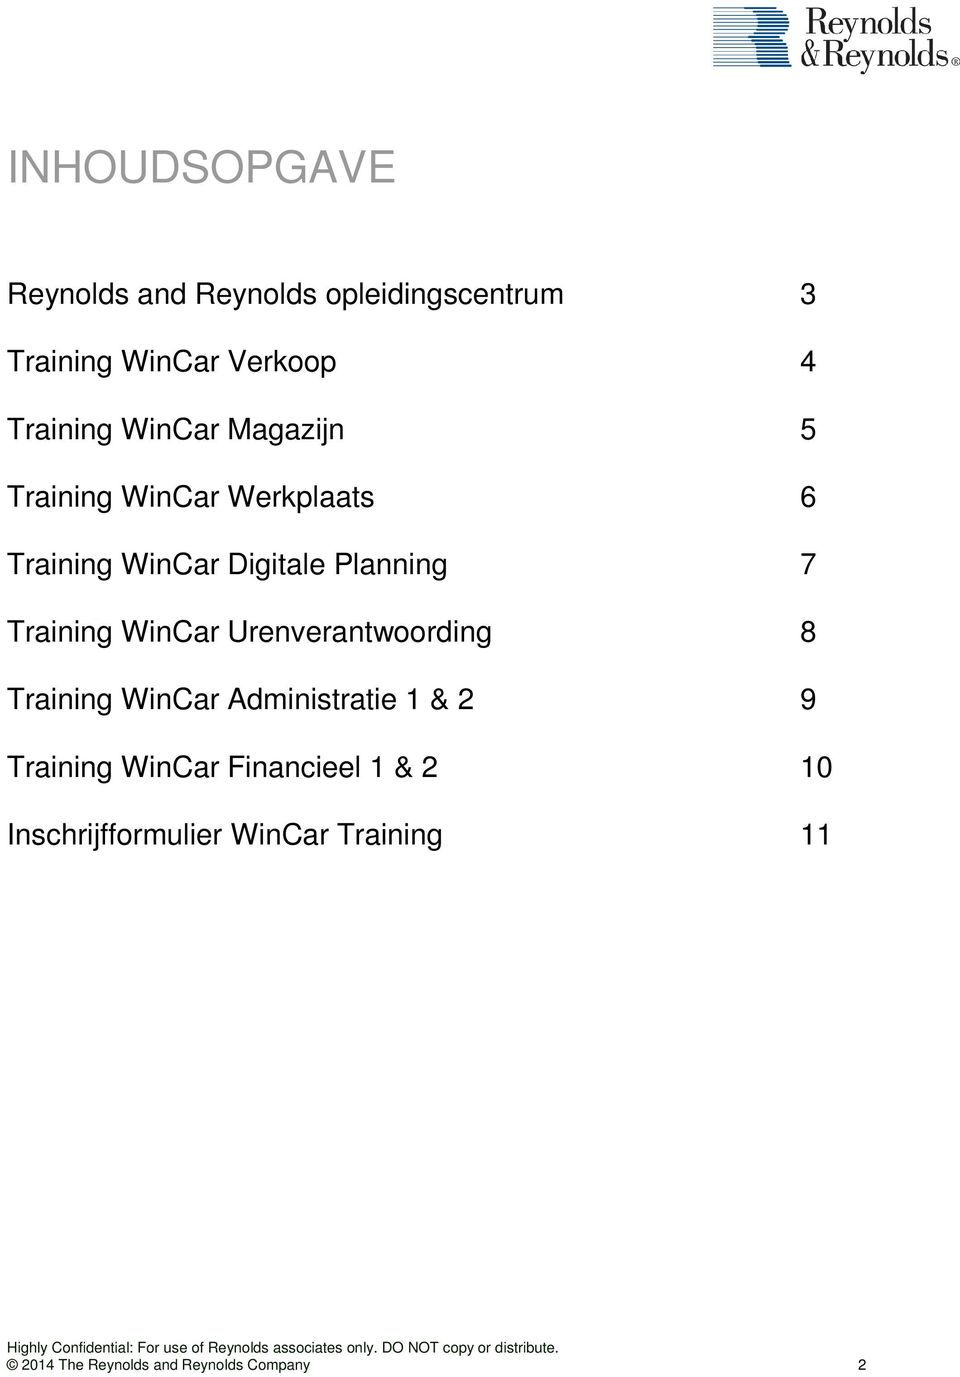 Training WinCar Urenverantwoording 8 Training WinCar Administratie 1 & 2 9 Training WinCar